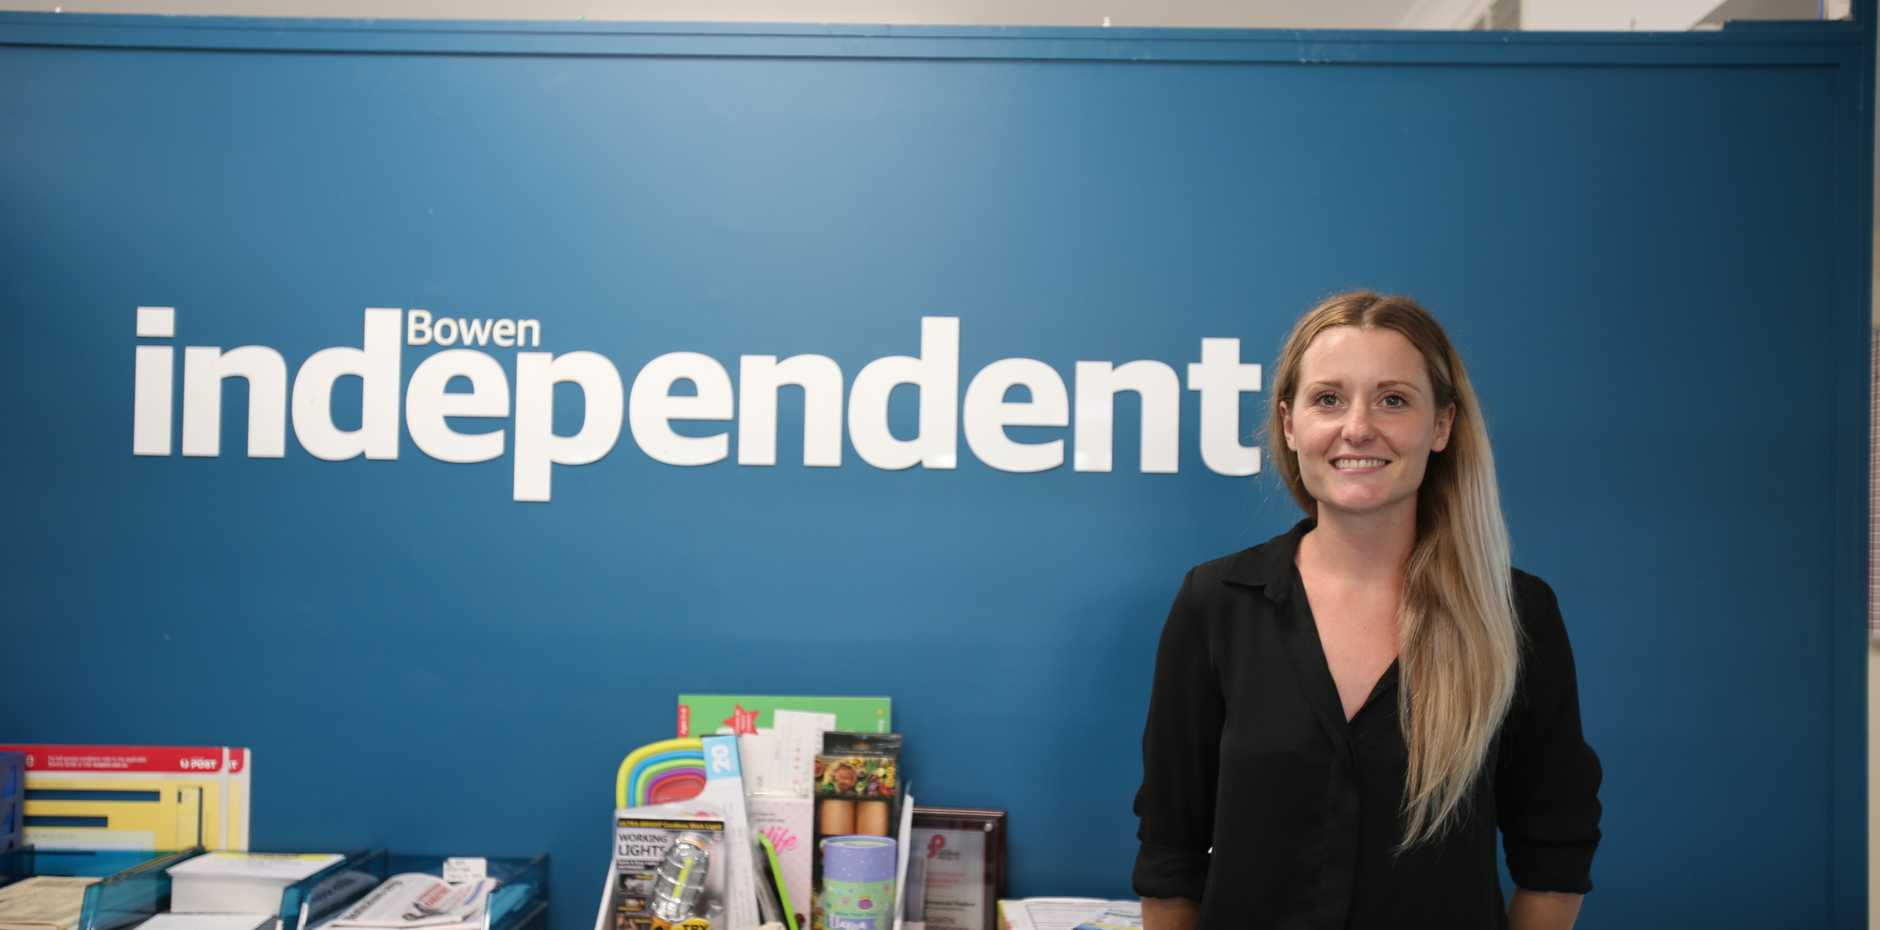 New journalist Anna Wall joins the team at the Bowen Independent.